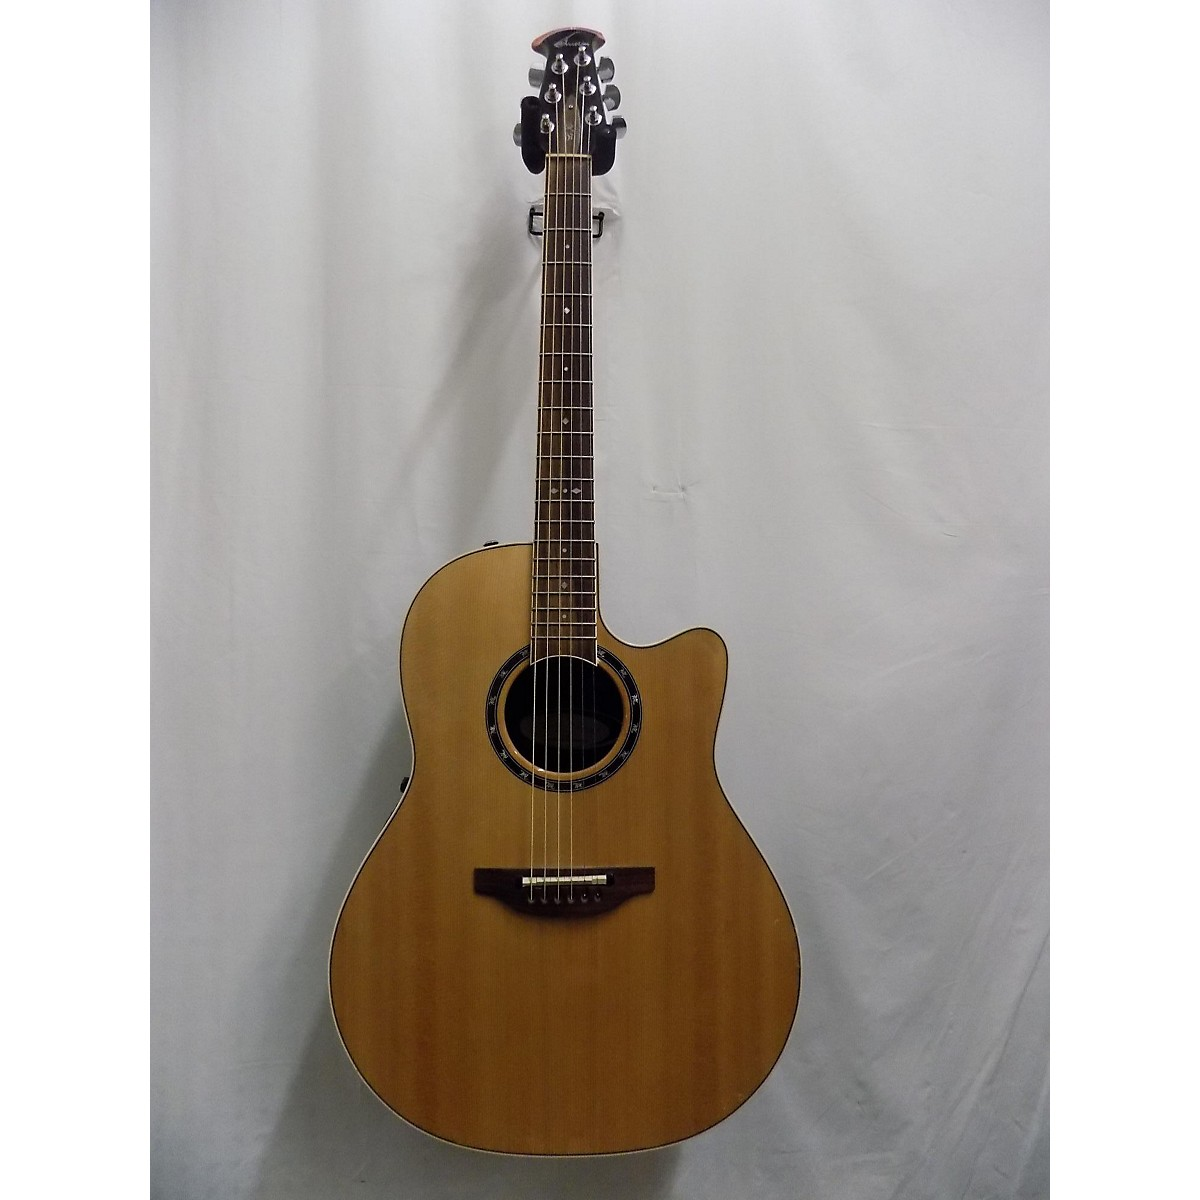 Ovation 2771LX Acoustic Electric Guitar